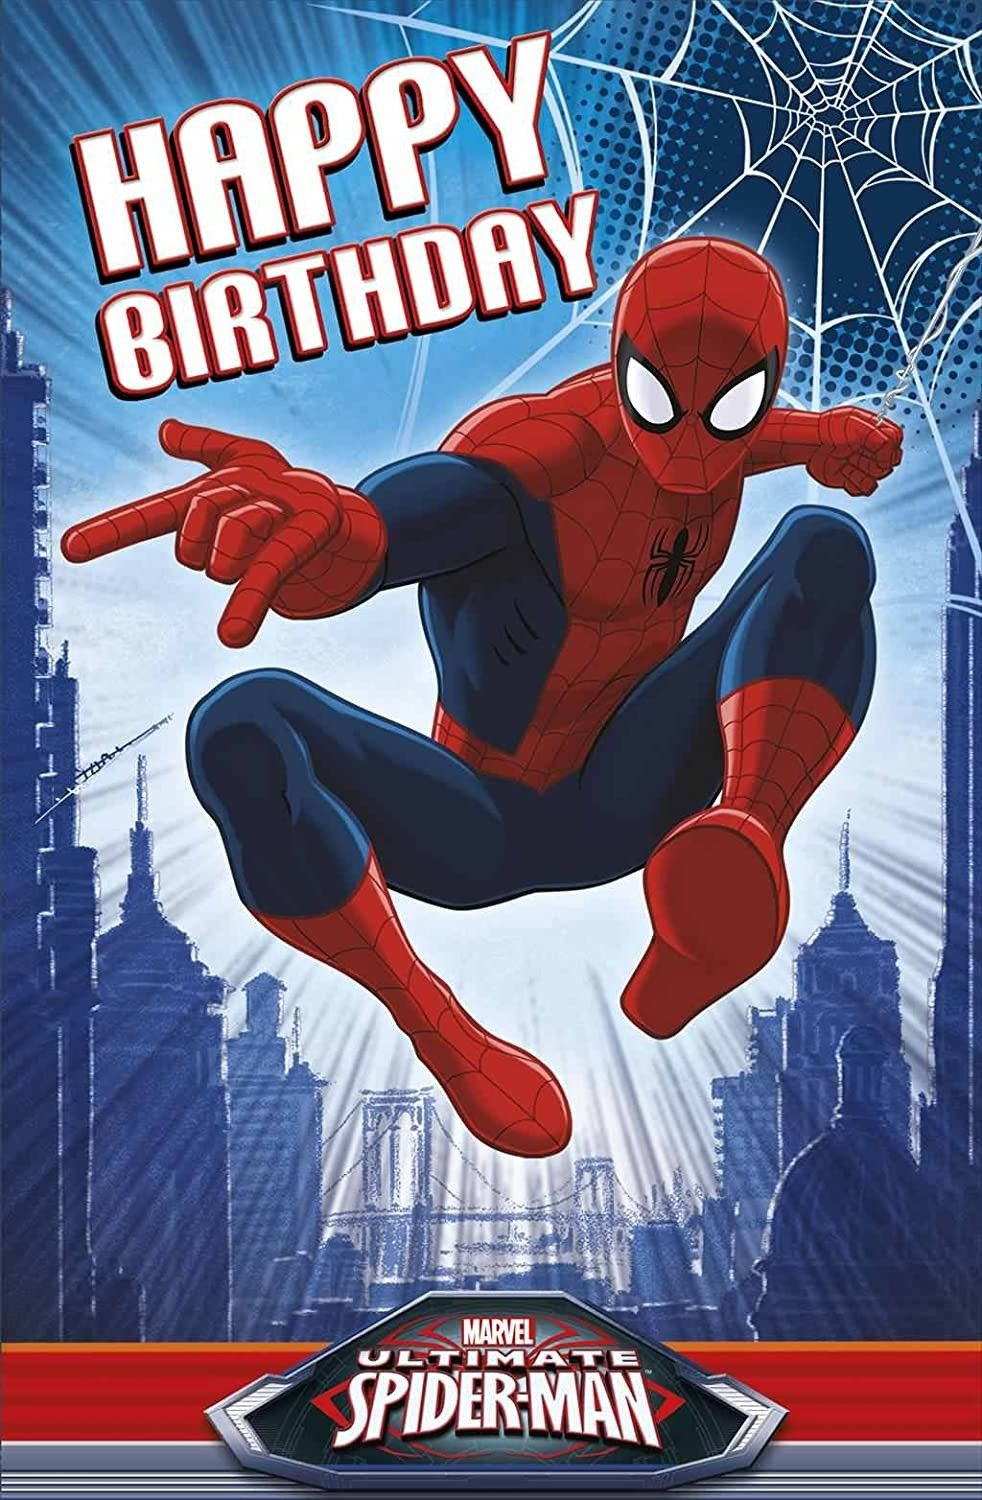 Pin By Deb Miller On Happy Birthday Happy Birthday Spiderman Happy Birthday Disney Birthday Wishes For Kids